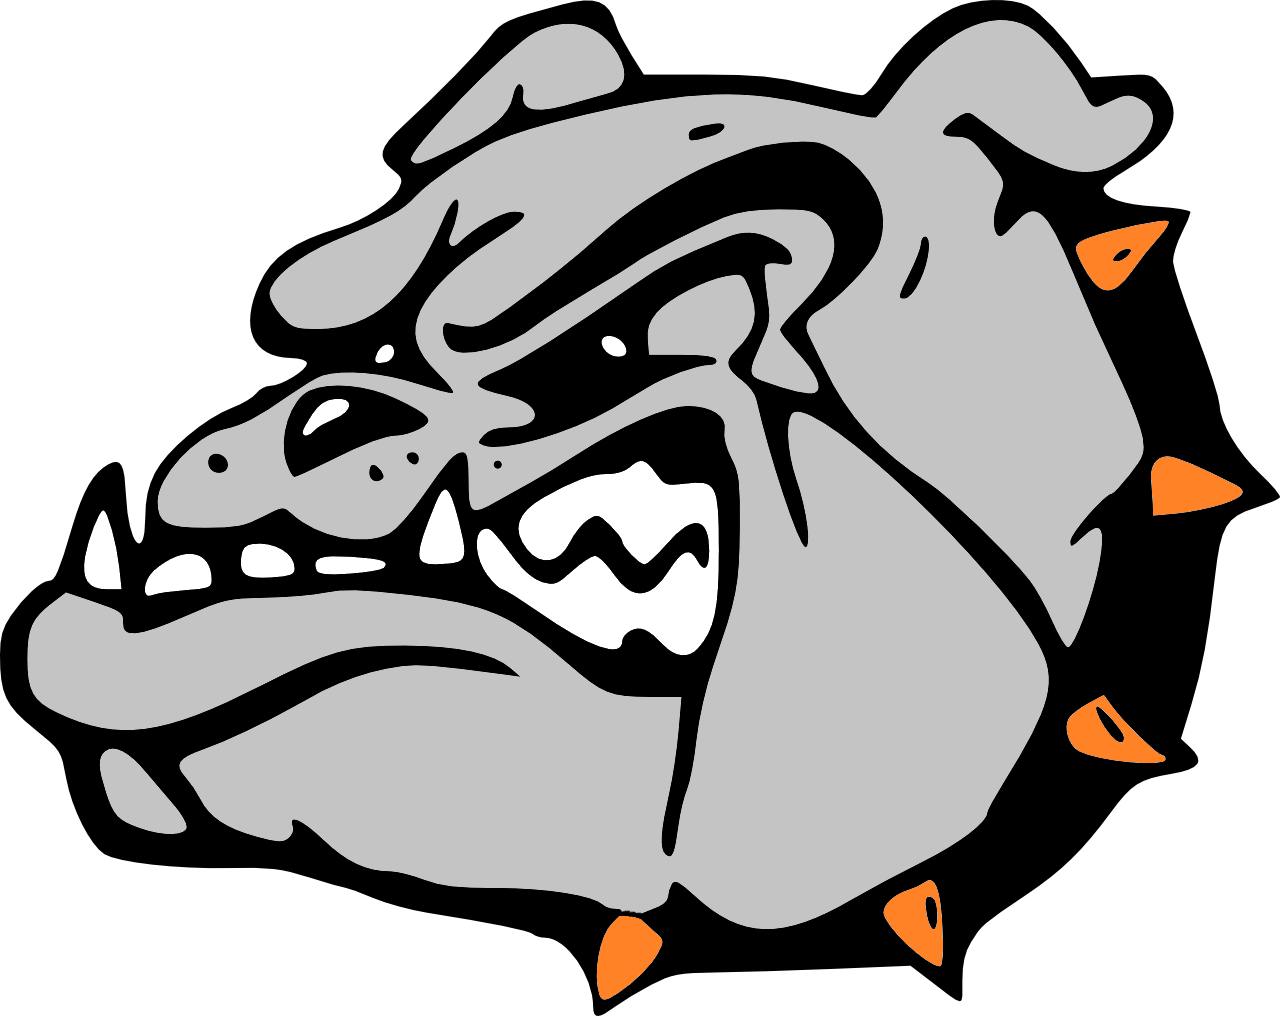 Bulldog basketball playoffs clipart vector library download MARTINSBURG BULLDOGS - Basketball Friday Night in WV vector library download